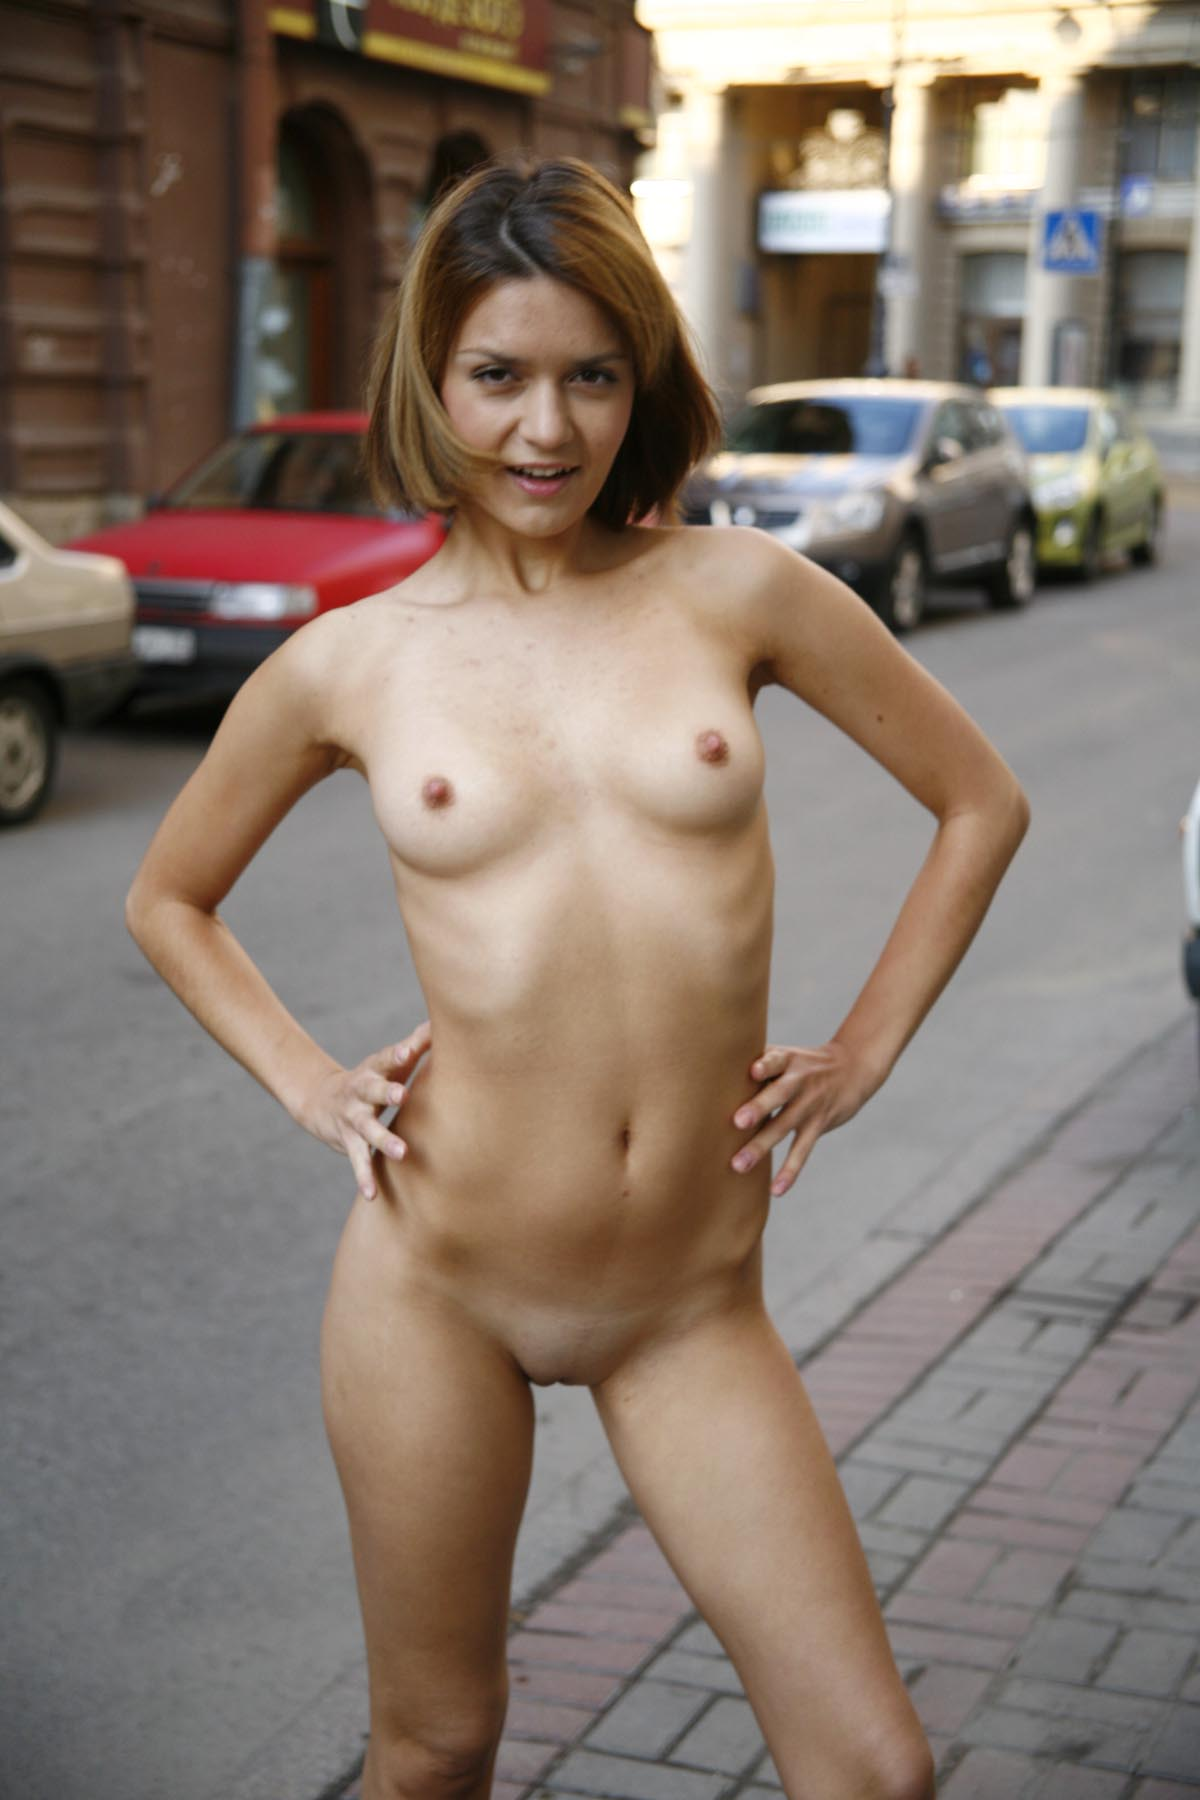 Sporty Short-Haired Blonde Posing Totally Naked At City -3247